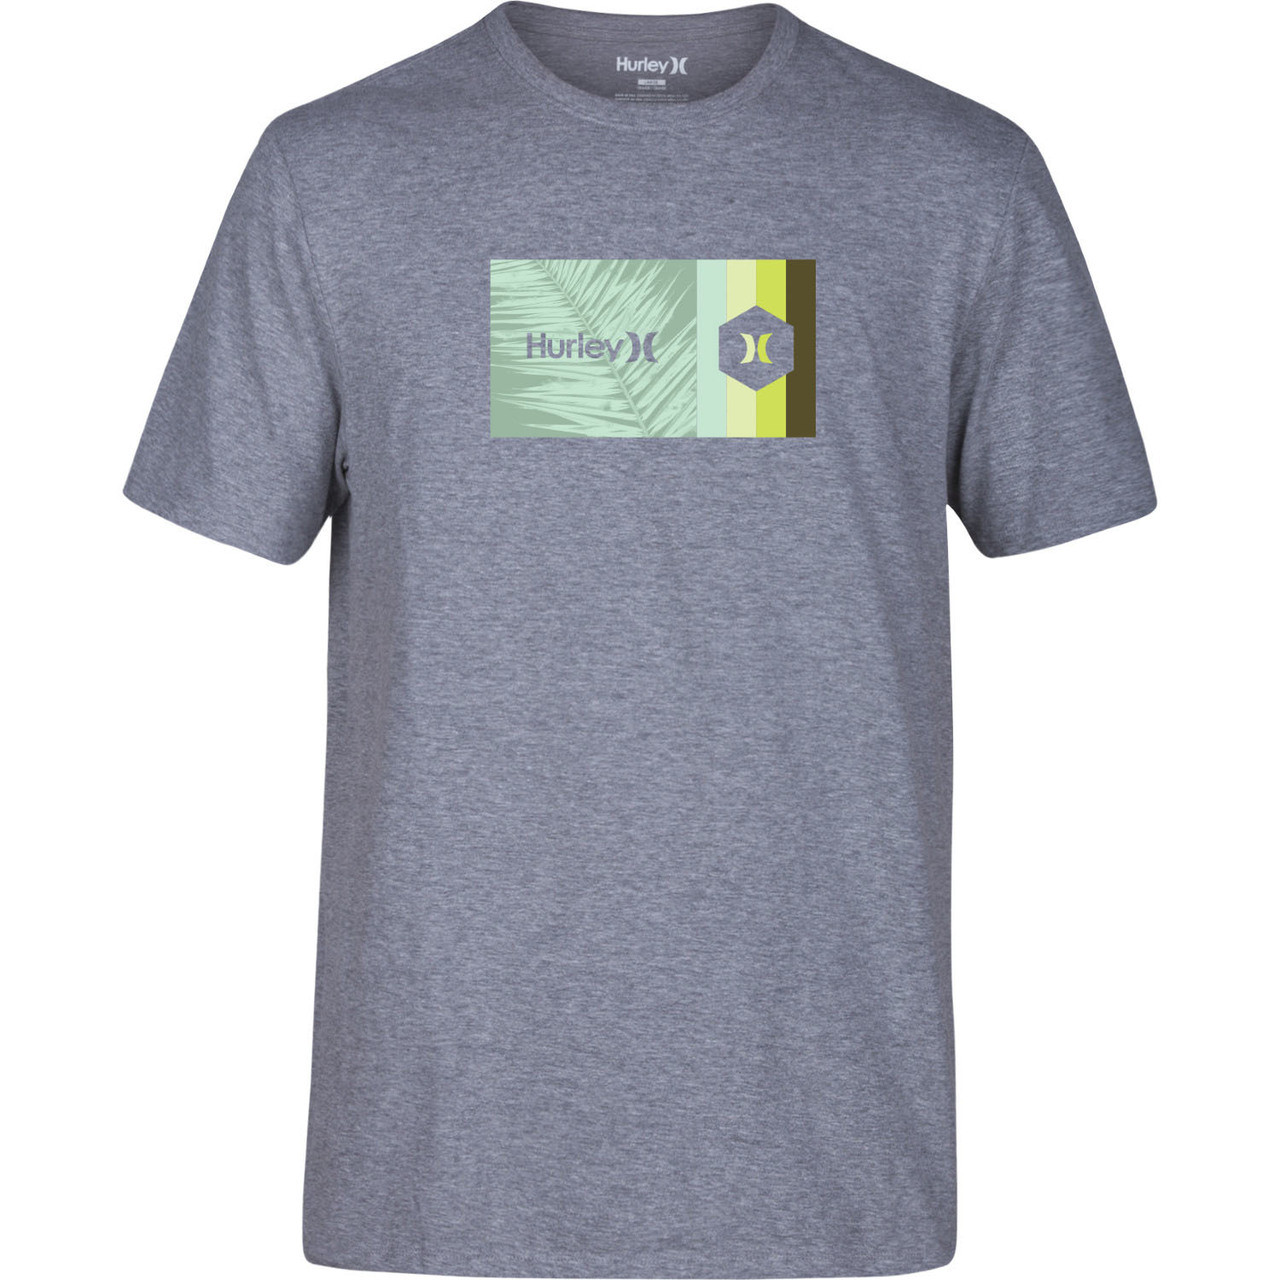 a954dd30 Hurley Tee Shirt - Double Standard - Dark Heather Grey - Surf and Dirt